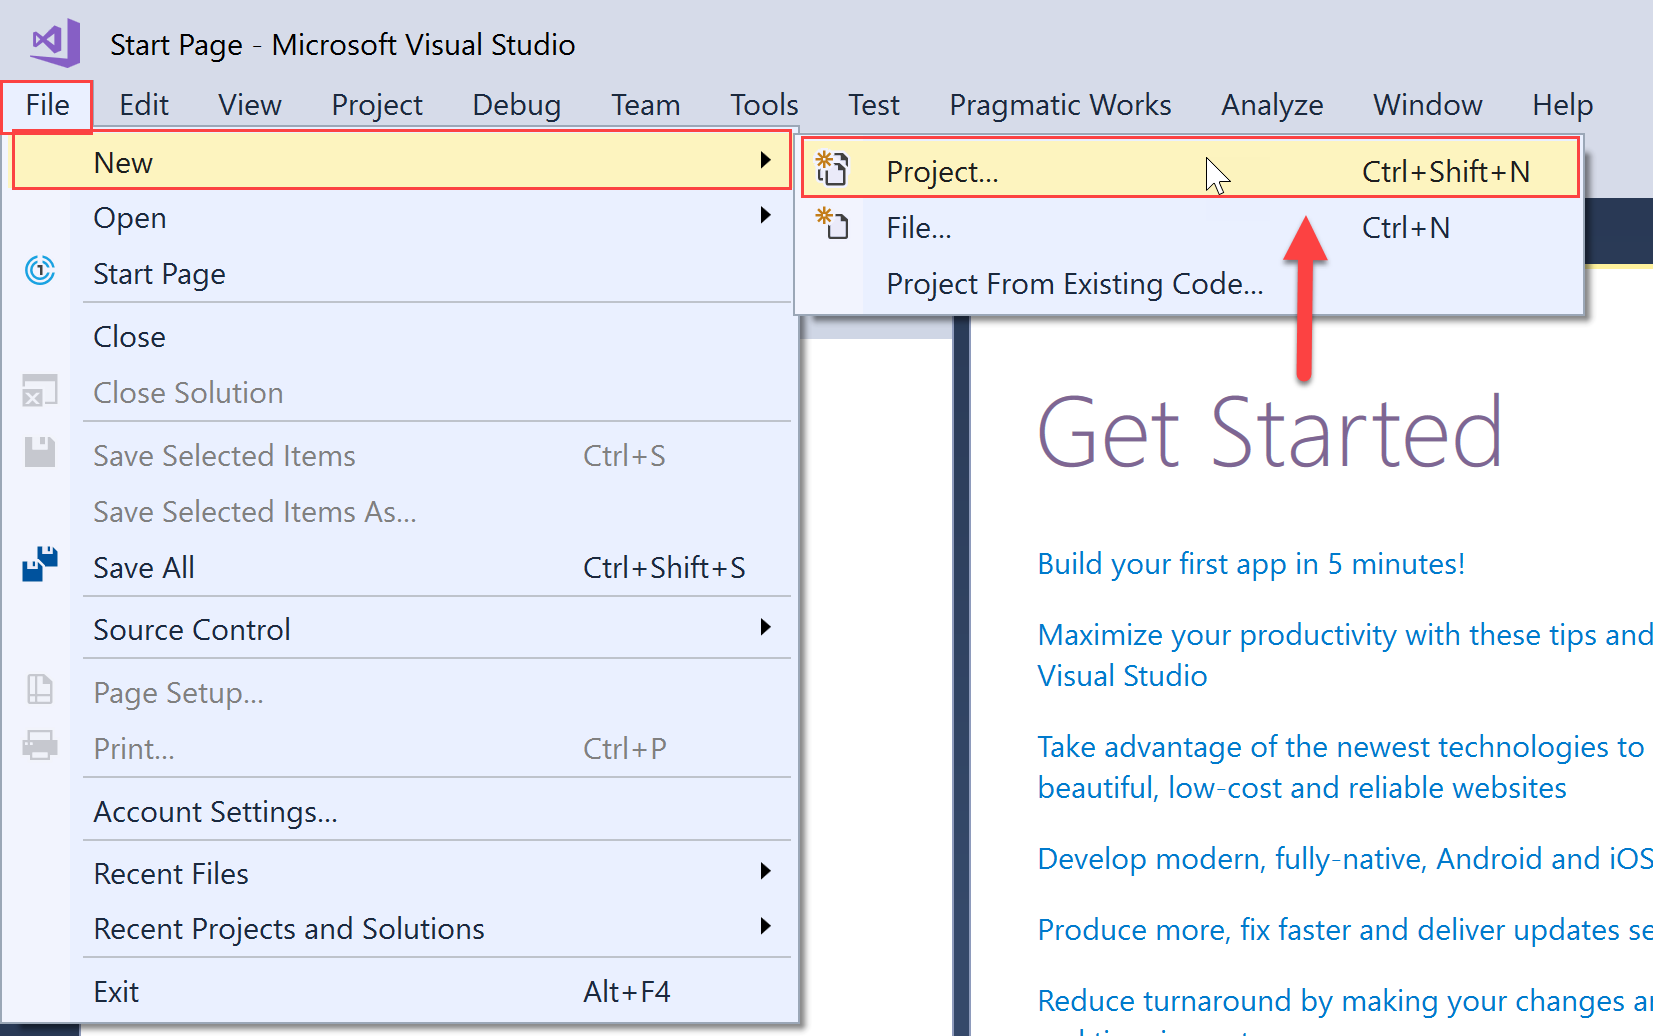 SentryOne Test create a new project in Visual Studio